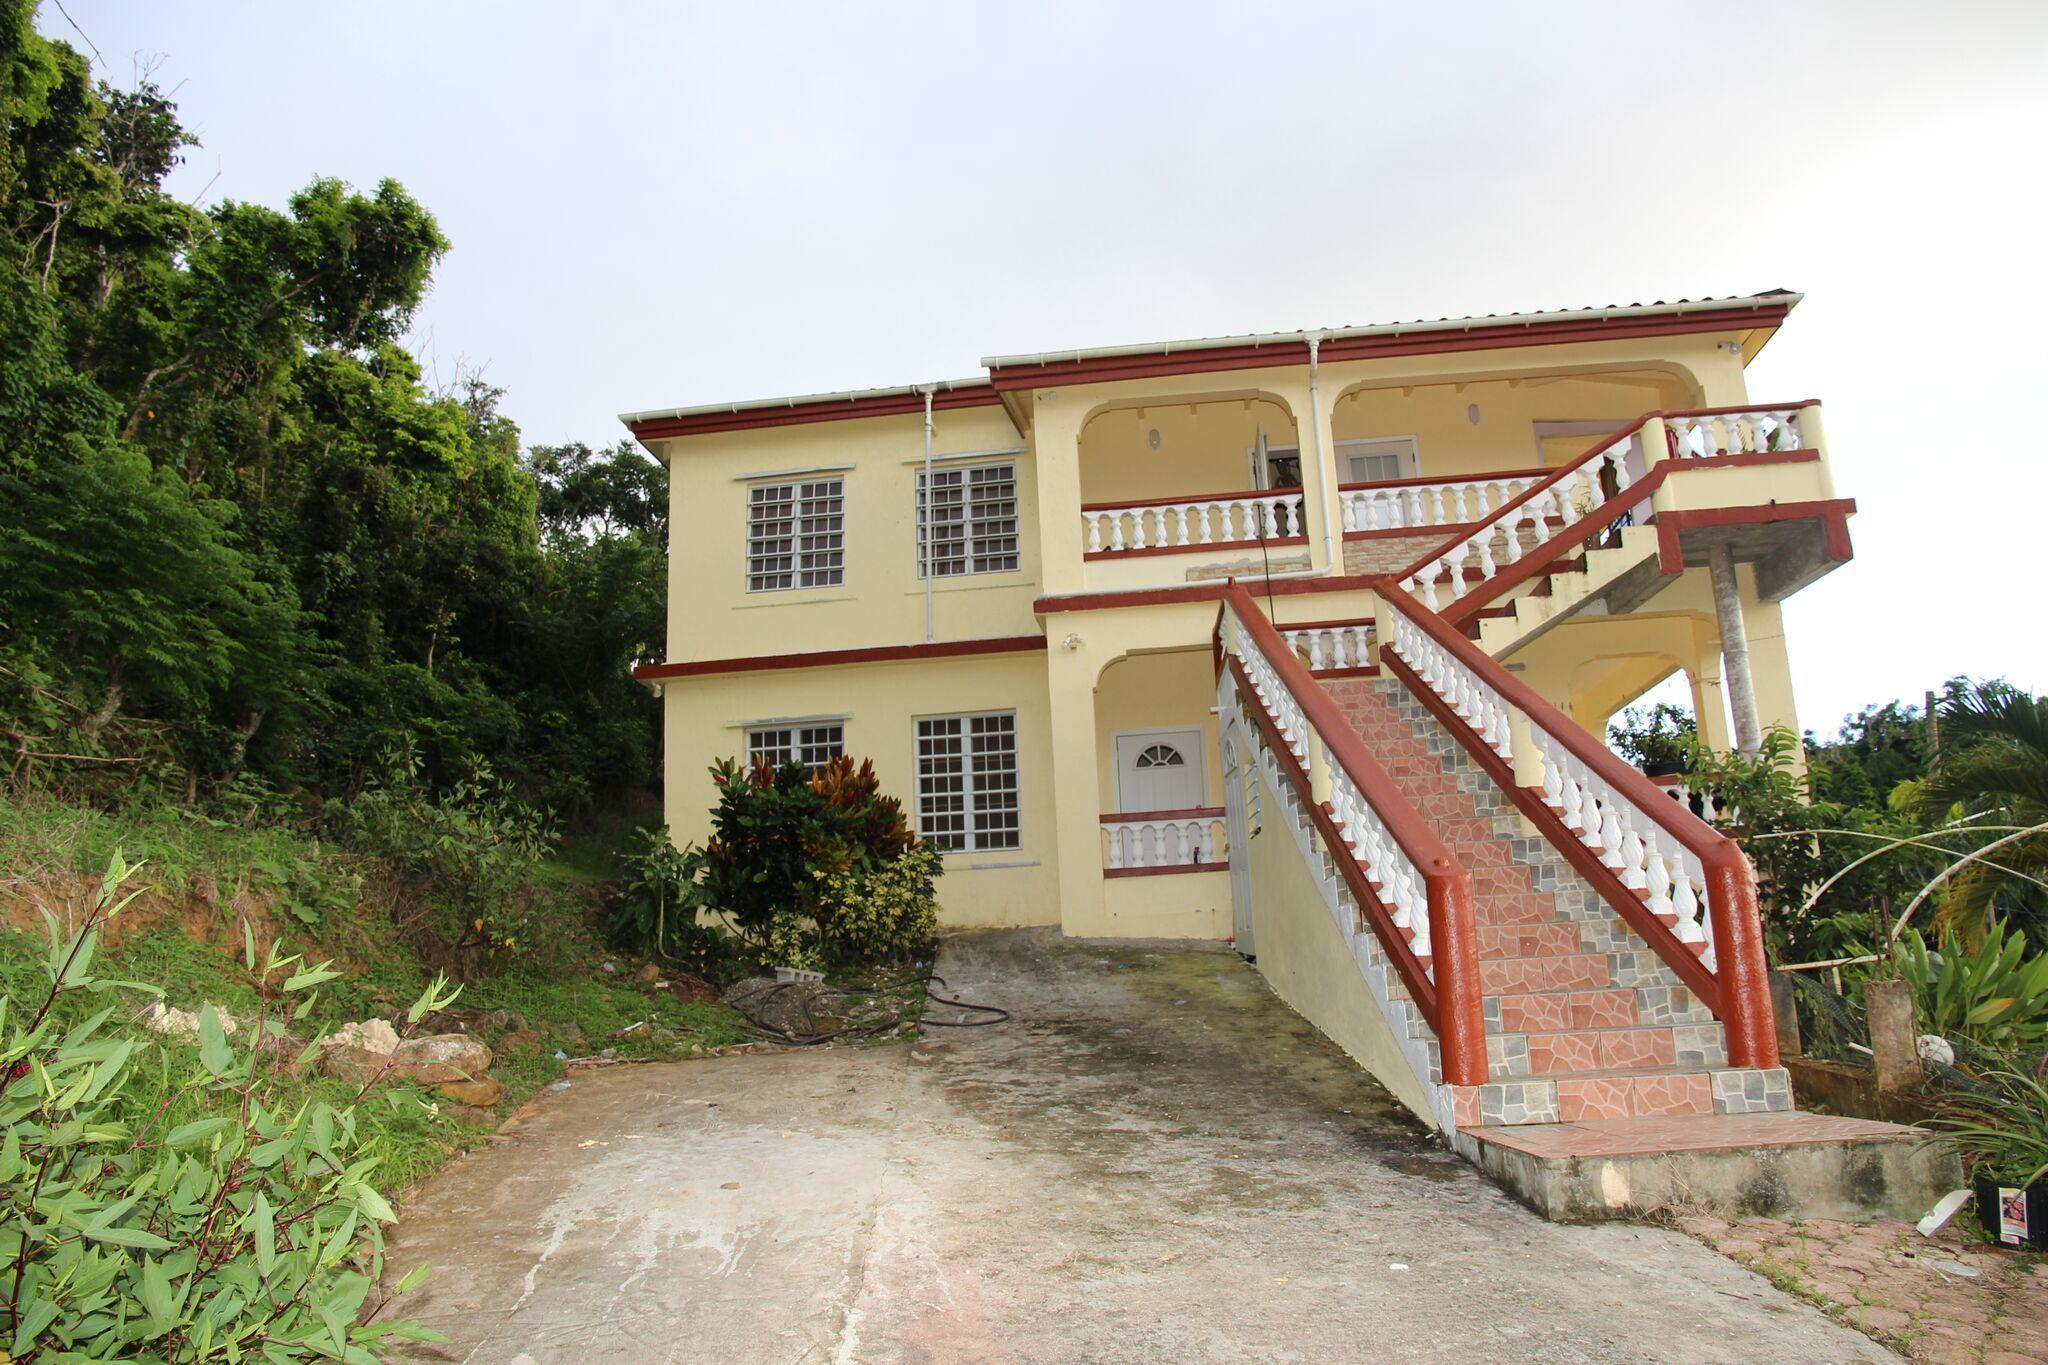 Multi-Family Home for Sale at 10-2-9 Lilliendal & Marienhoj LNS 10-2-9 Lilliendal & Marienhoj LNS St Thomas, Virgin Islands 00802 United States Virgin Islands